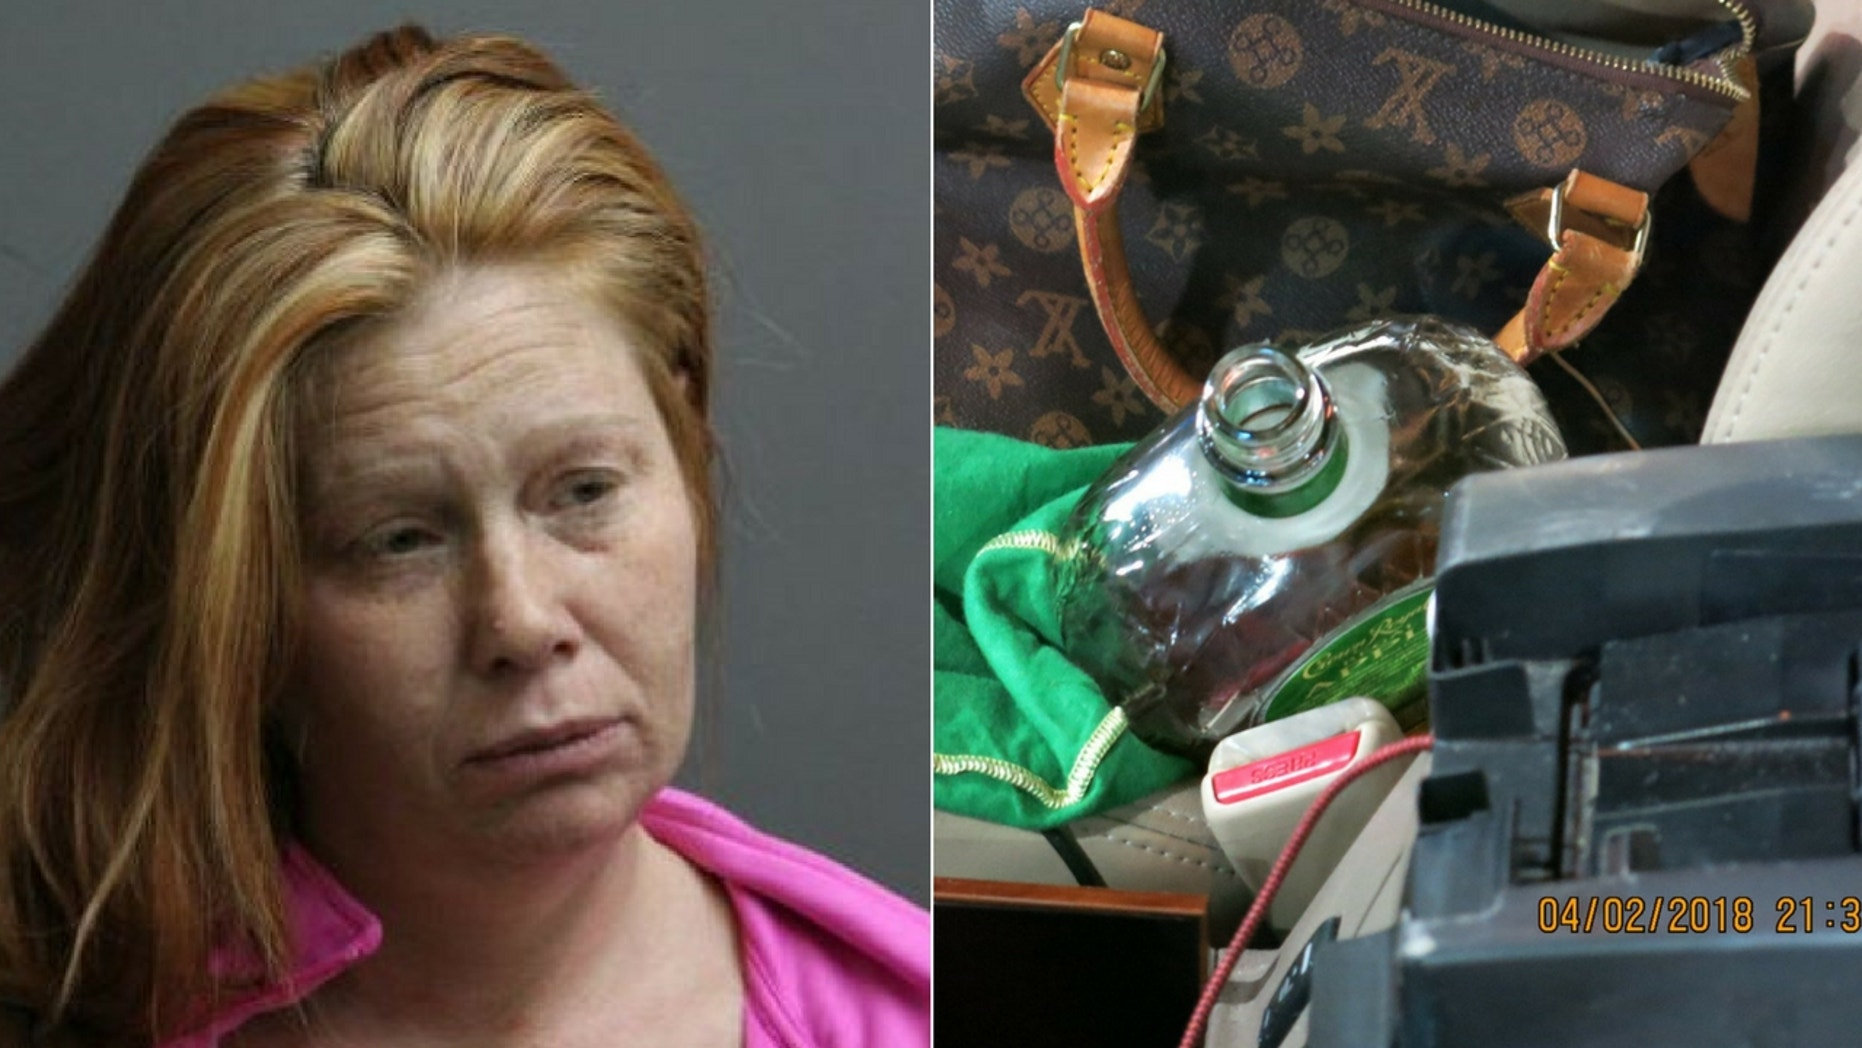 Tasha L. Schleicher, 41, was arrested in Illinois after police found her highly intoxicated.